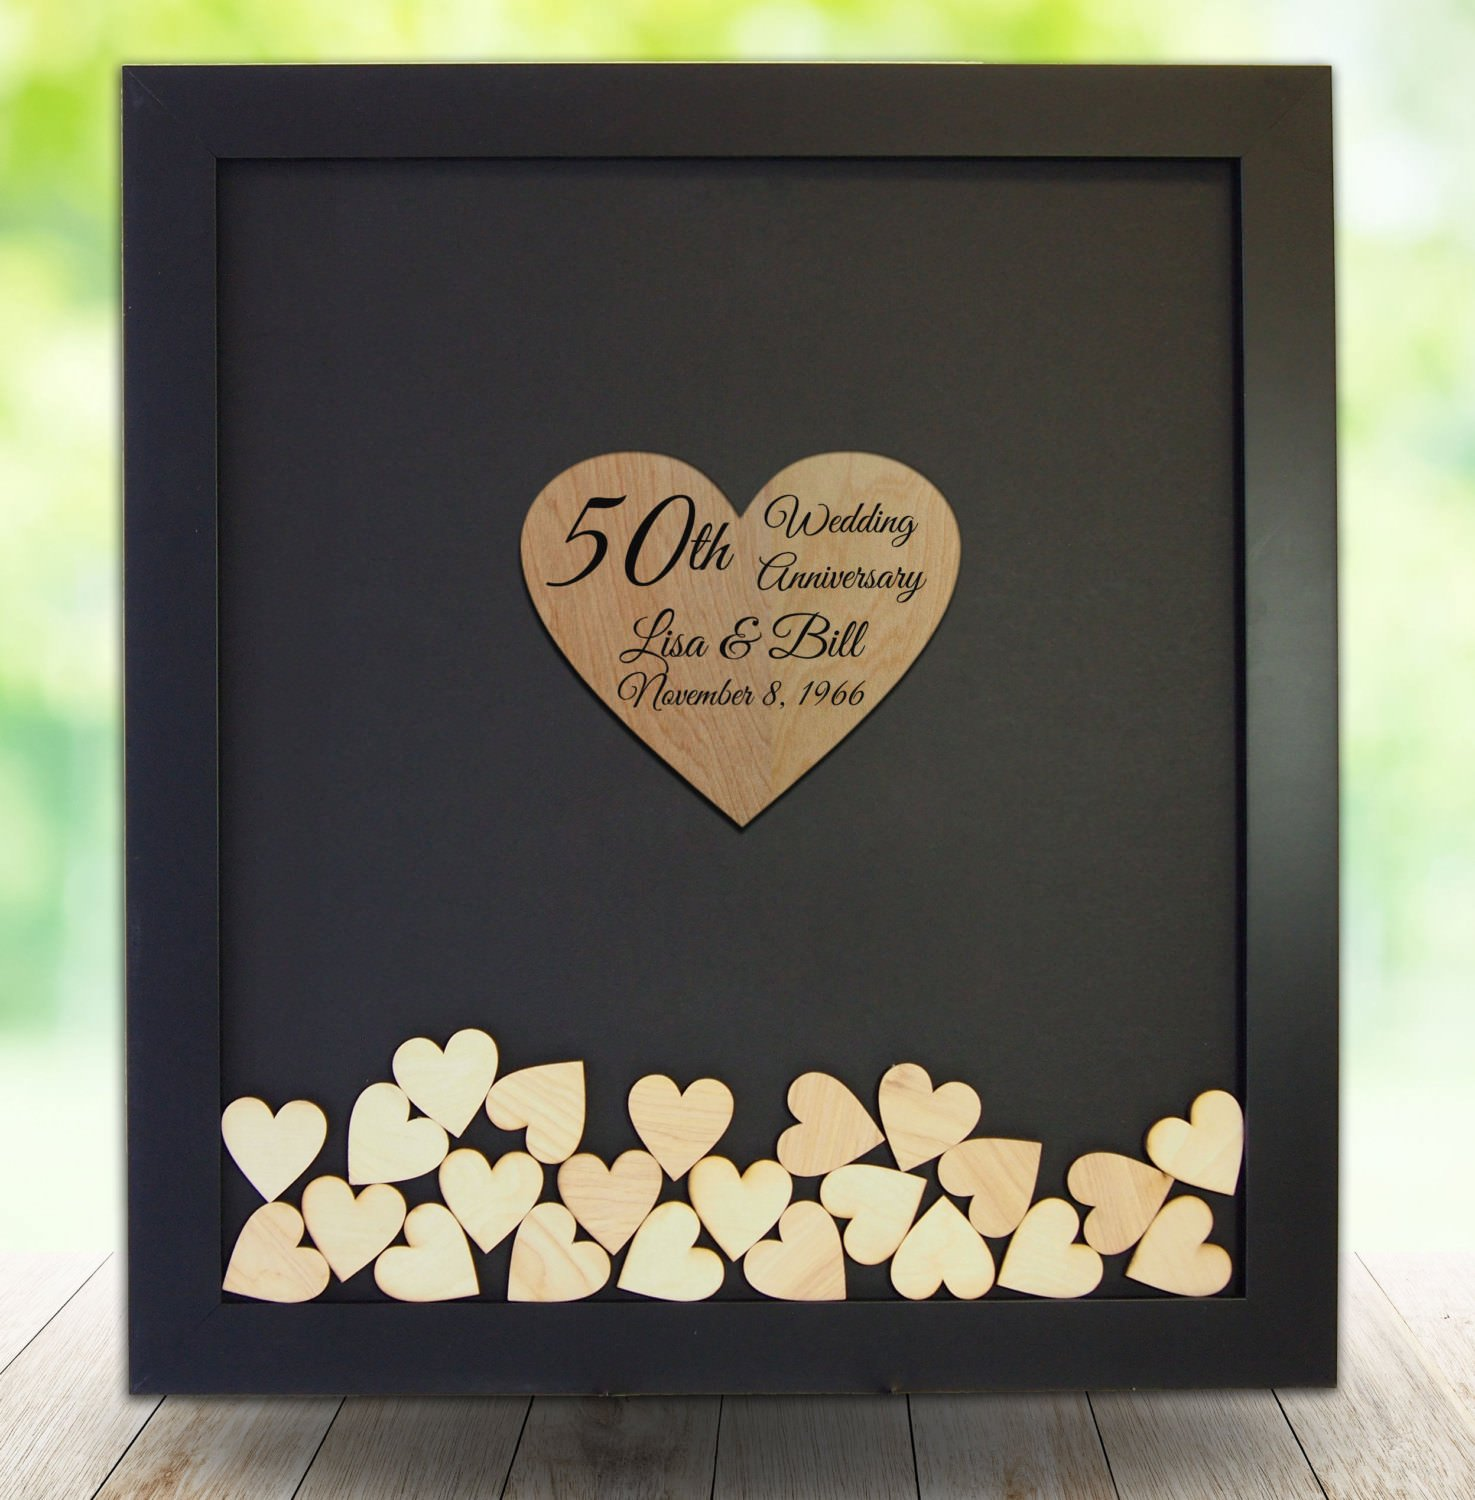 50th Wedding Anniversary Guest Book Alternative Drop Top Wooden Frame Custom Name Guestbook Wedding Gifts Wedding Favors 16 x 20 inch with 150 Hearts